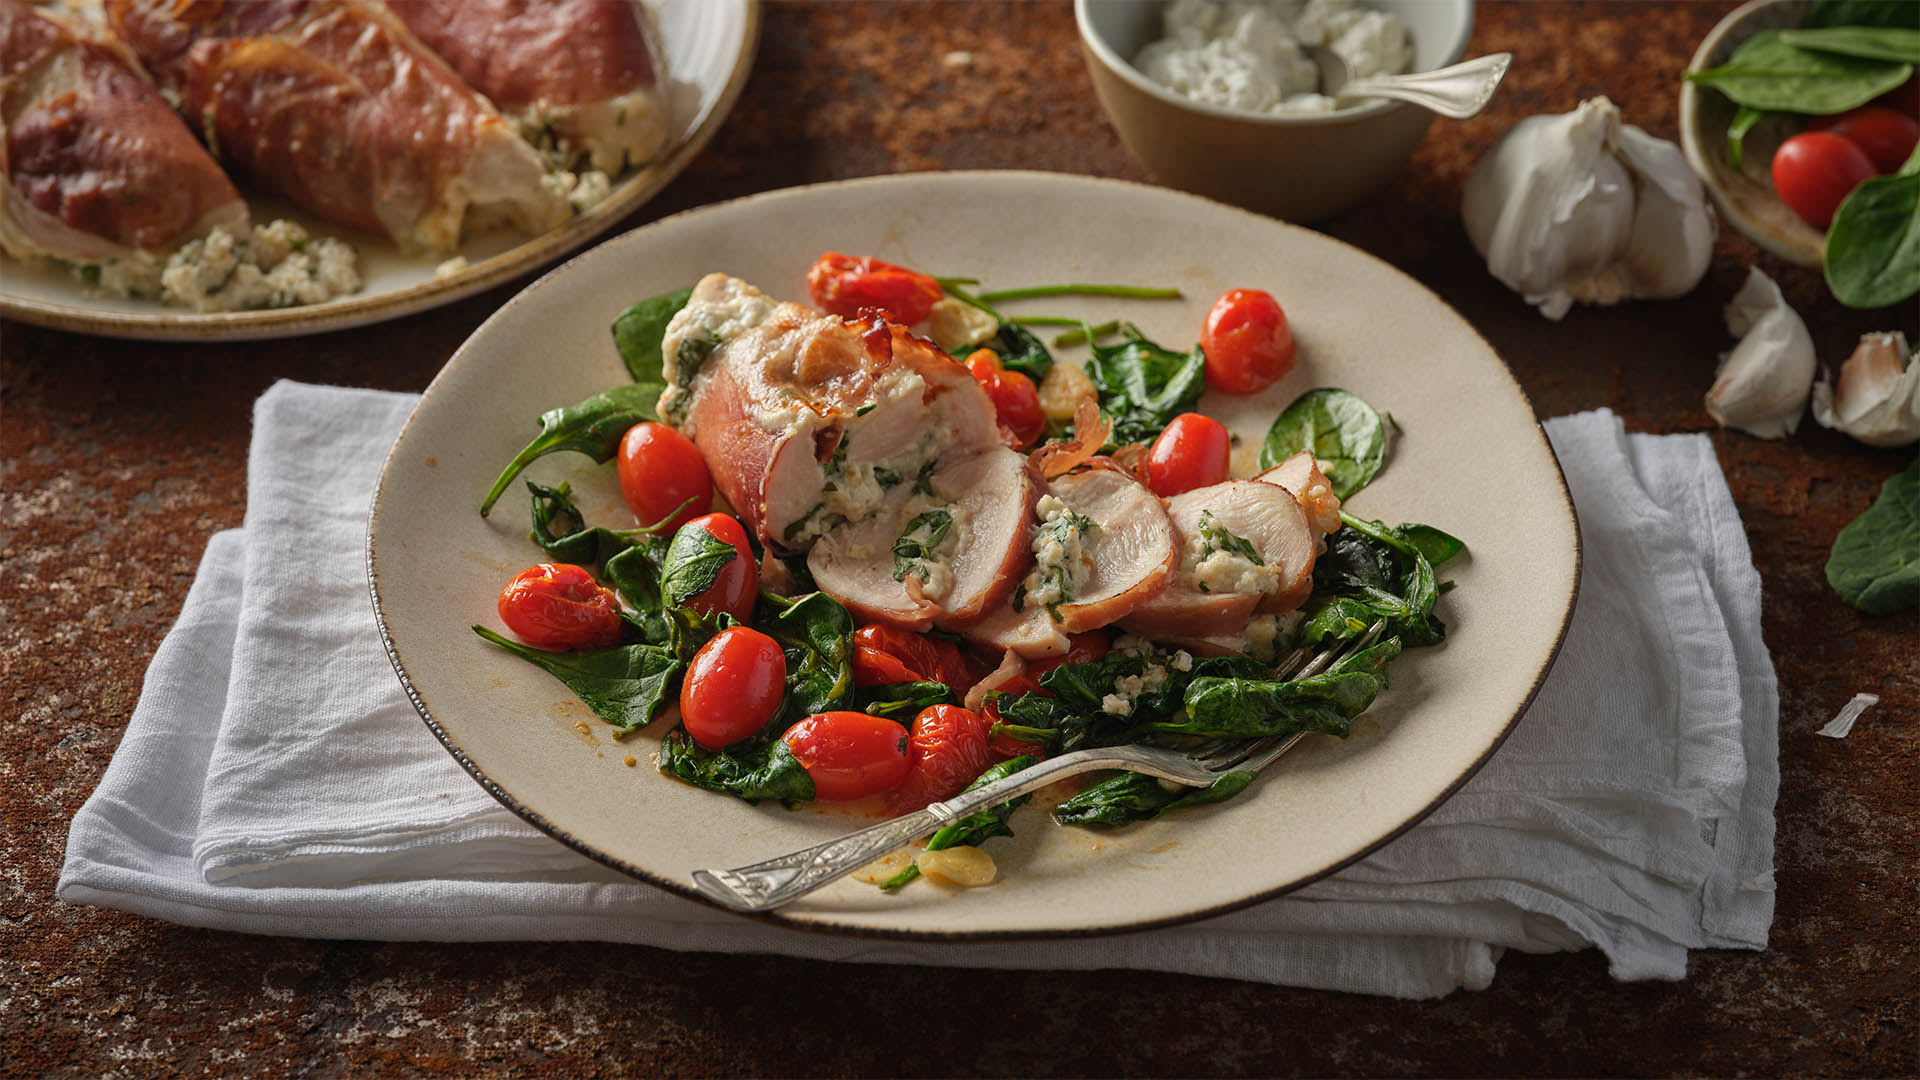 Quark stuffed chicken surrounded by cherry tomatoes and green vegetable on a white plate on top of a white napkin surrounded by quark cheese and cooked chicken in the background.